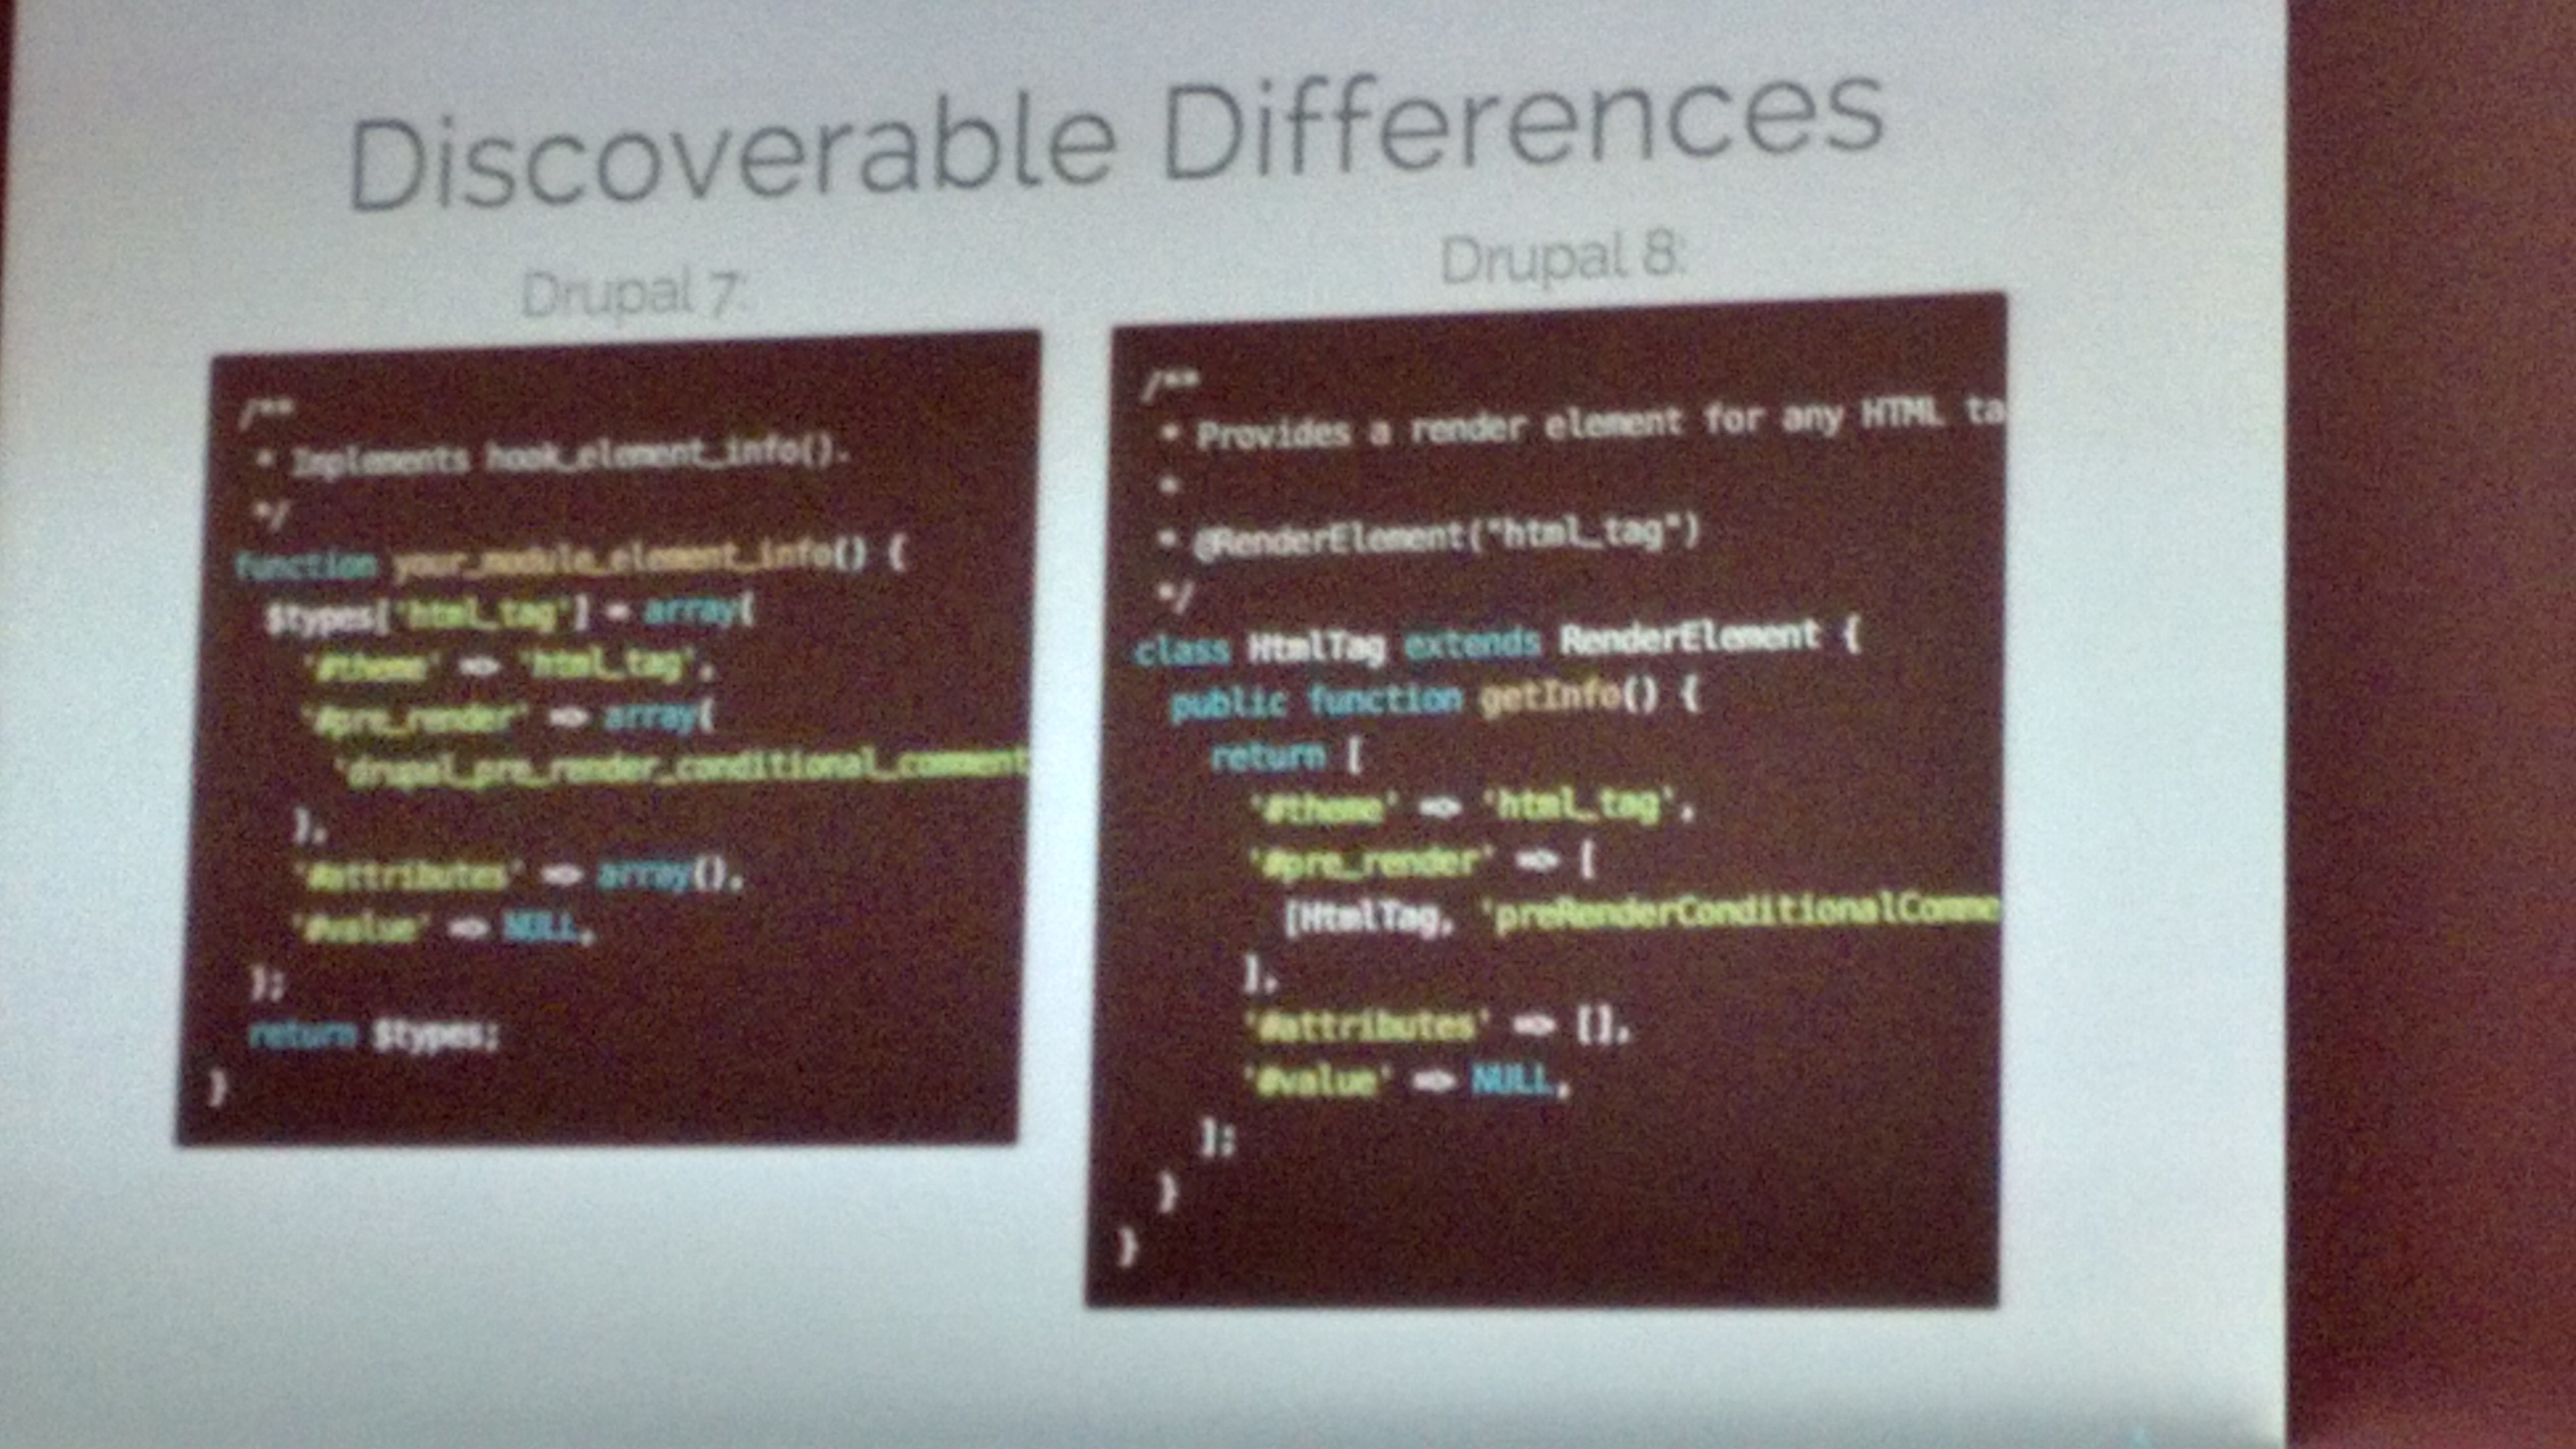 Some of the differences shown between Drupal 7 and Drupal 8 theming